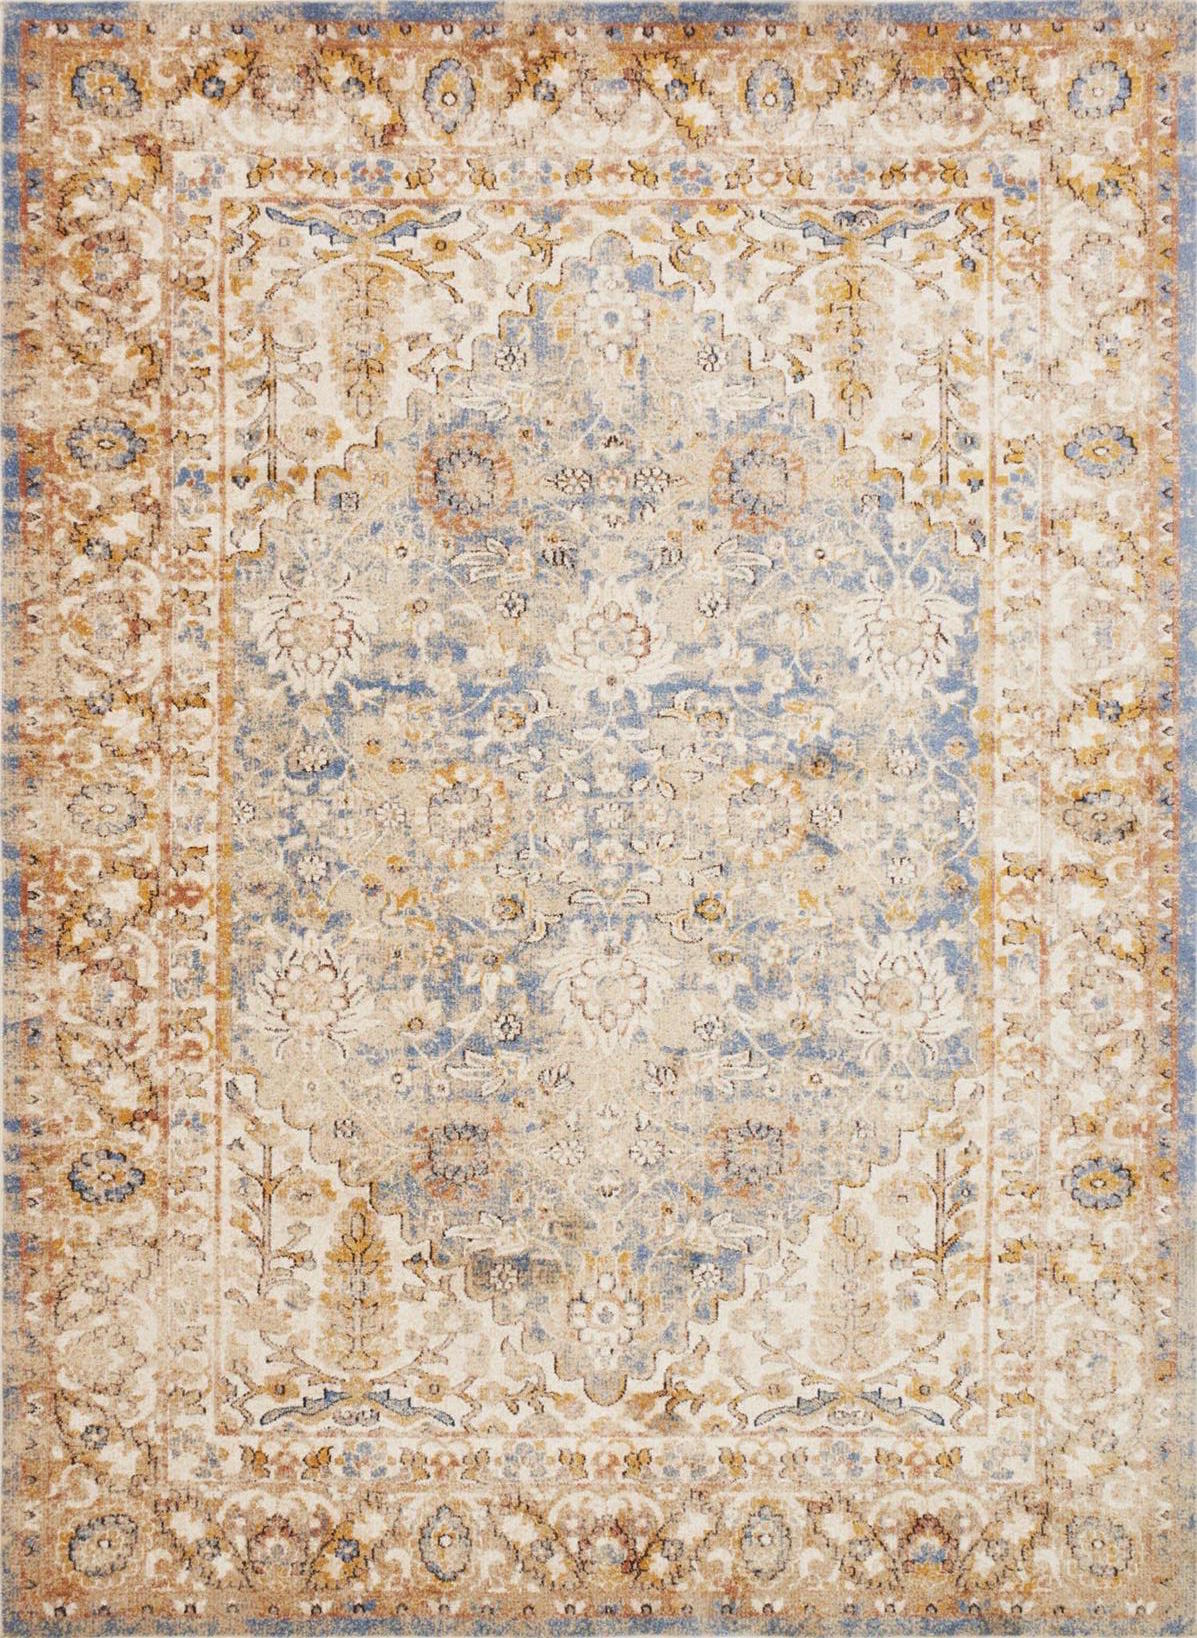 Trinity Ty 05 Blue Multi Area Rug Magnolia Home By